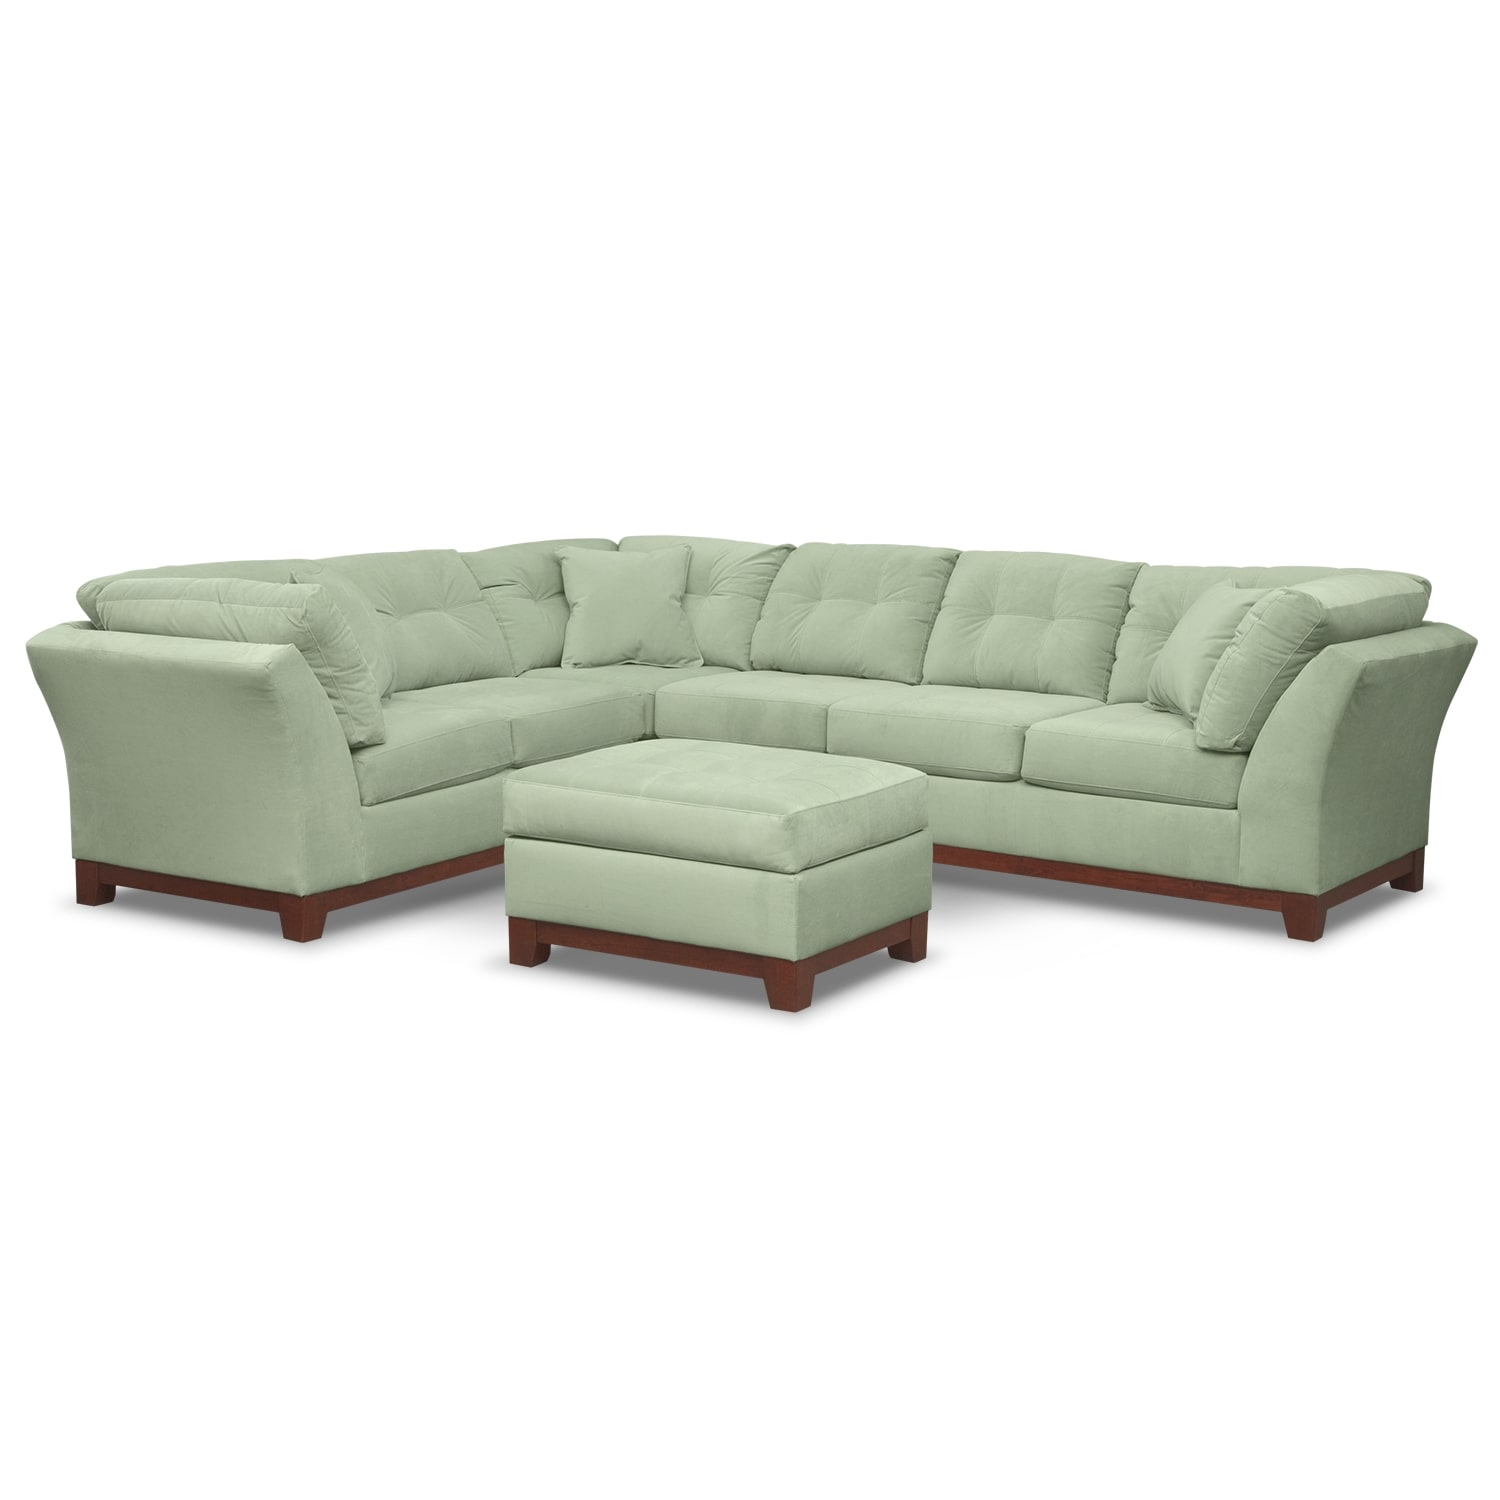 Living Room Furniture - Solace Spa II 3 Pc. Sectional and Ottoman